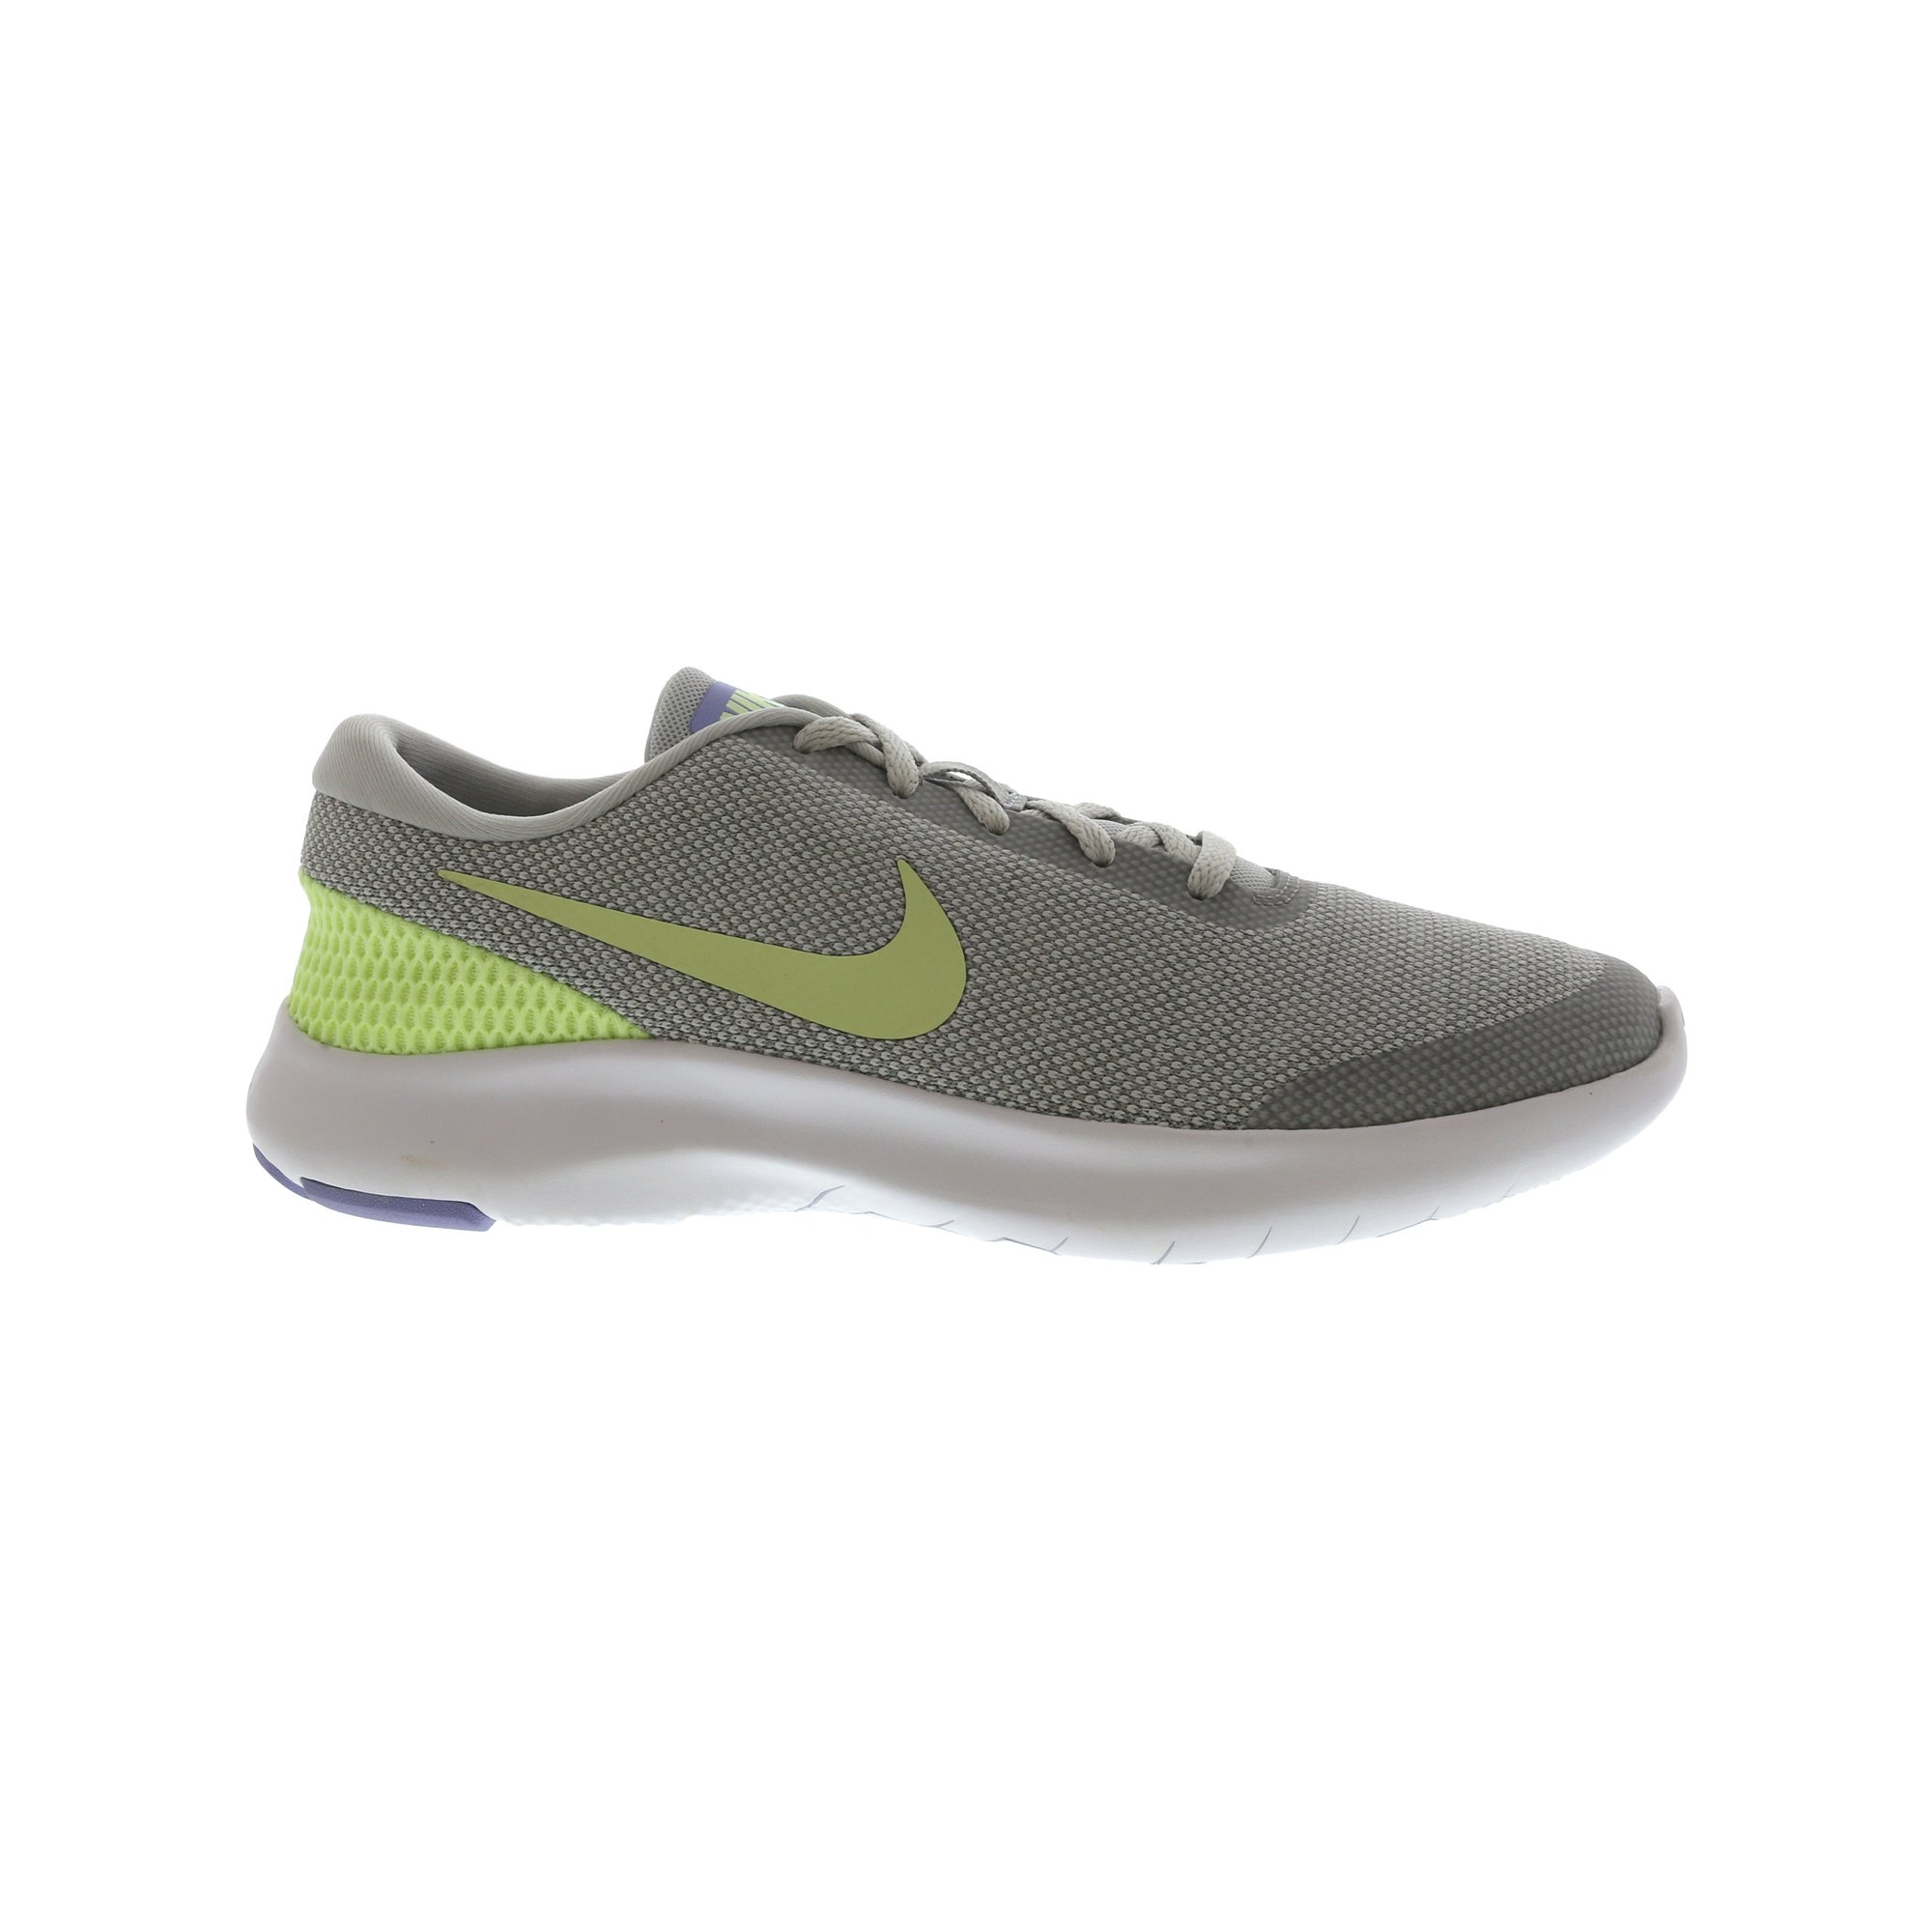 956fef01f64c Nike Women s Flex Experience Rn 7 Pure Platinum   Barely Volt Ankle-High  Fabric Running Shoe - 9.5M